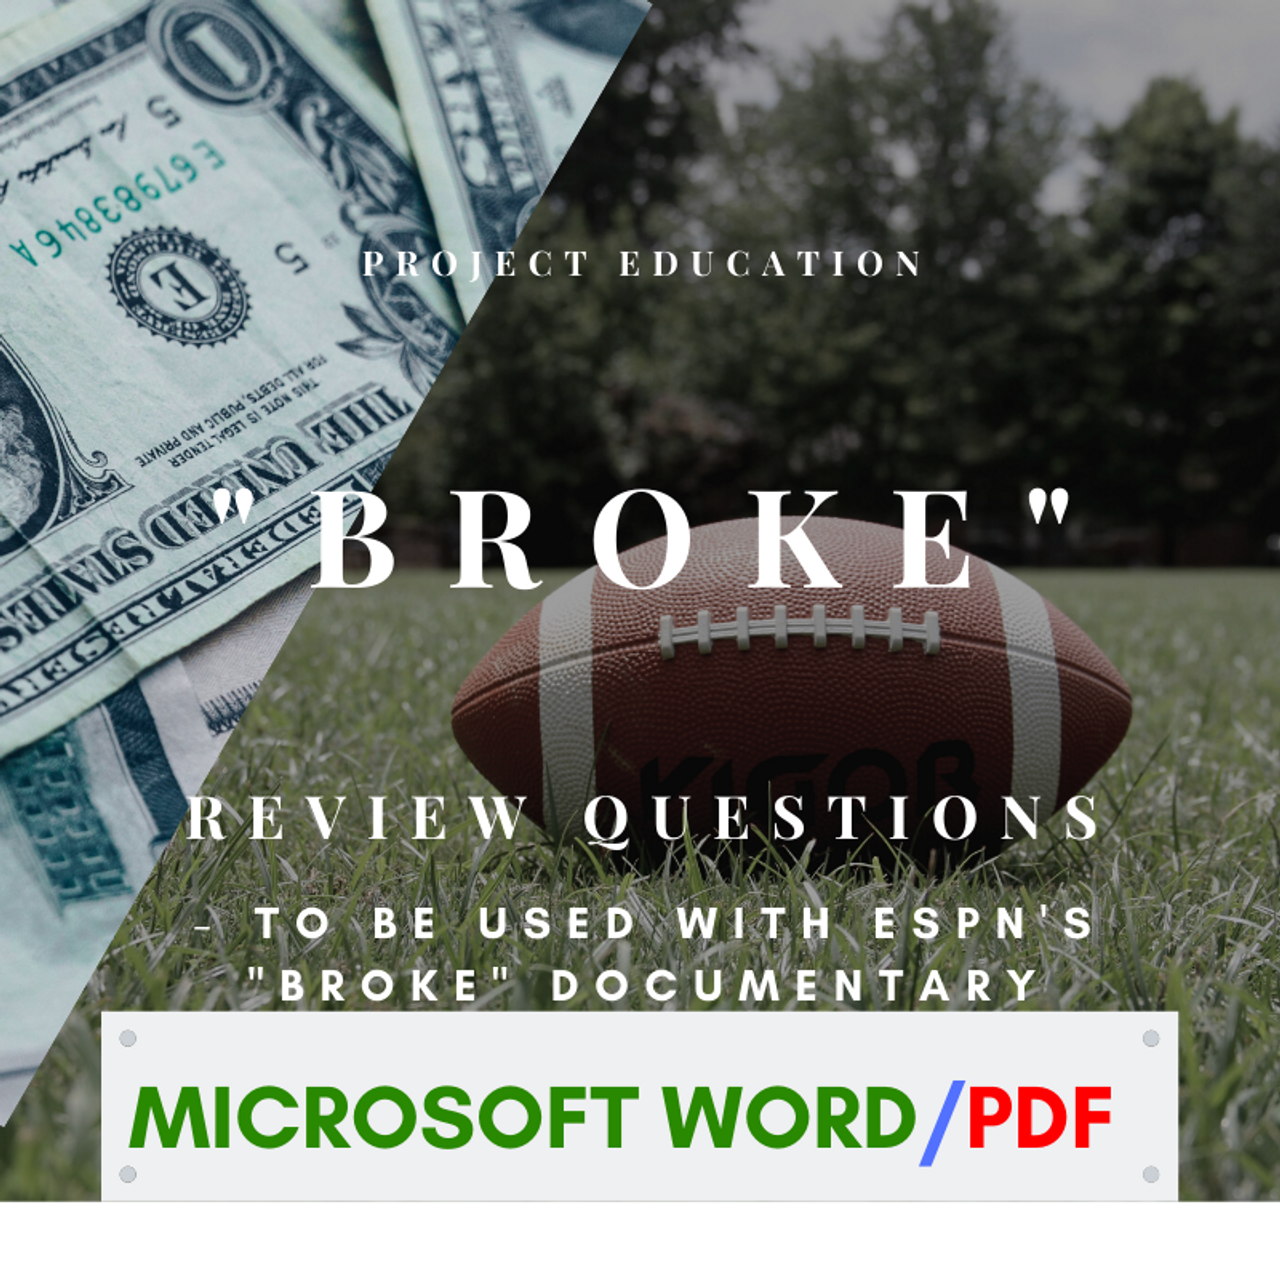 Broke Review Questions